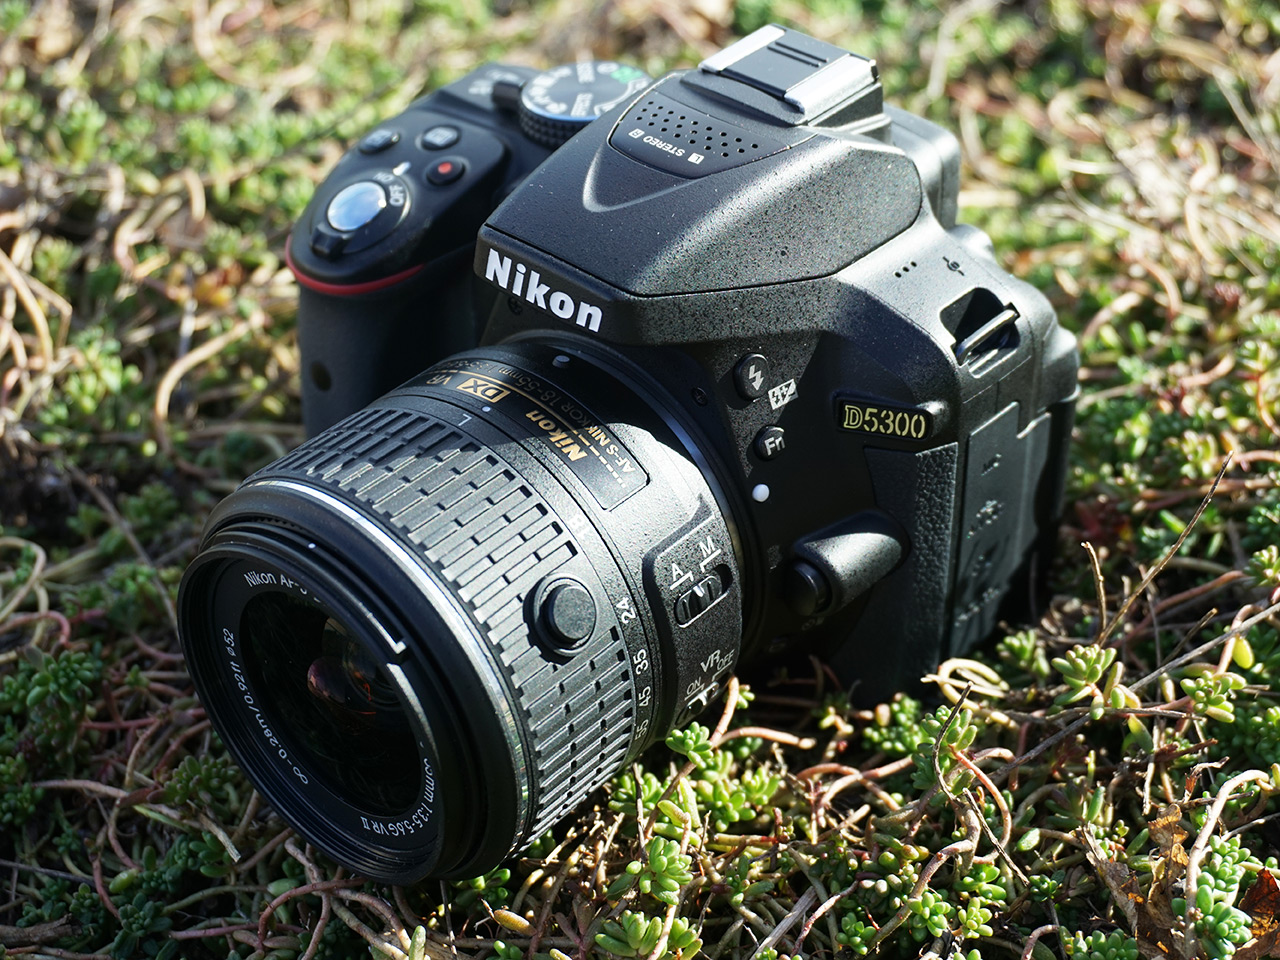 Nikon D5300 Review: Digital Photography Review